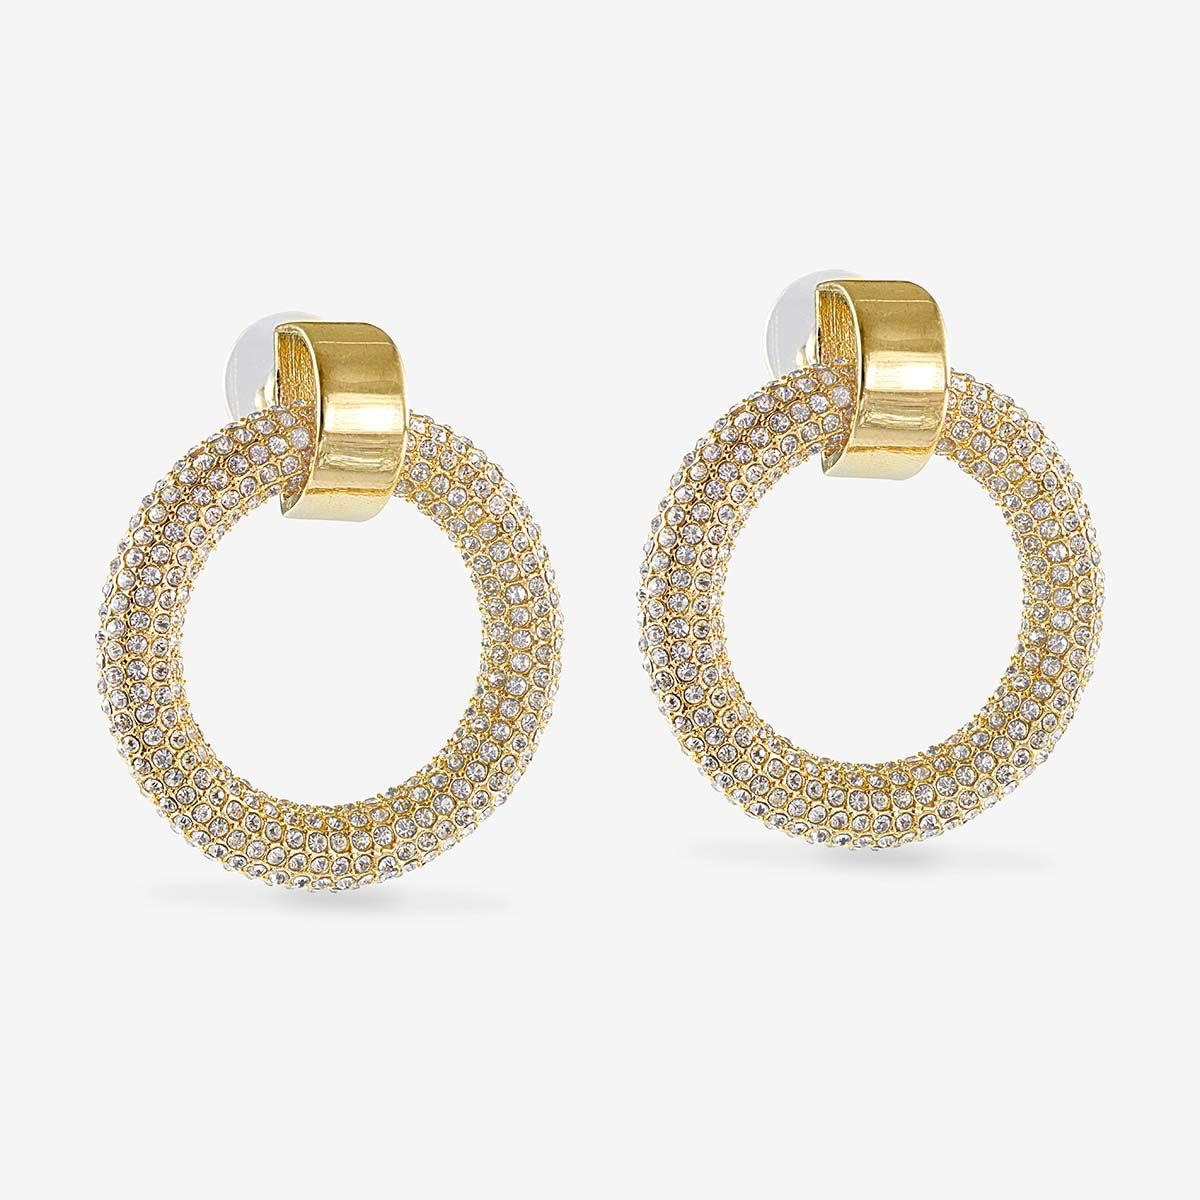 The Pave Door Knocker Hoops - Ohrstecker - 14k vergoldet